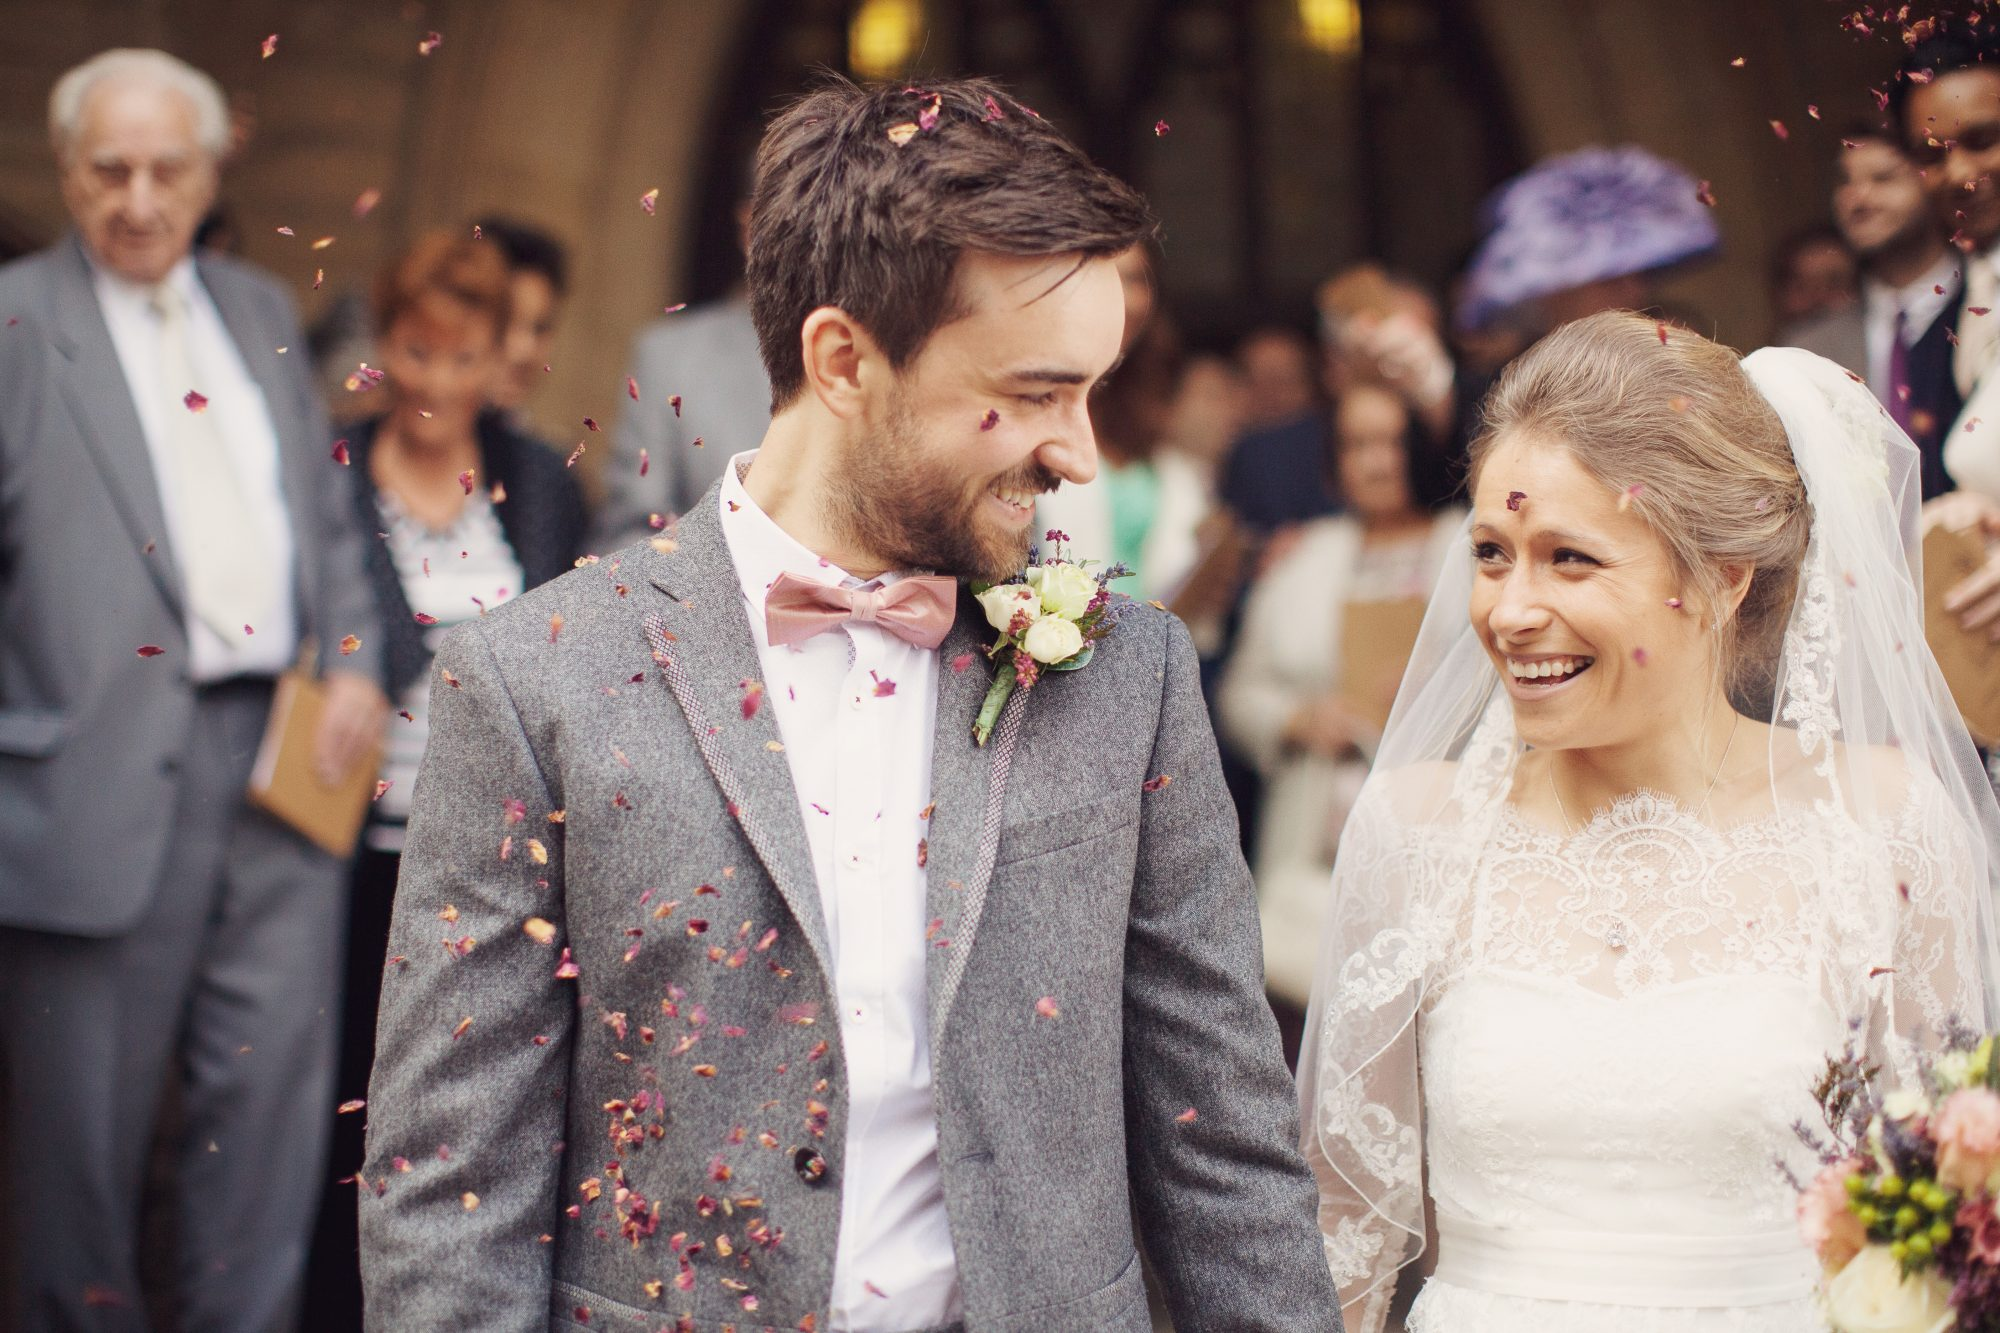 A beautiful newlywed couple walking through their red rose petal confetti throw at their wedding at St. John's Ranmoor Church in Sheffield